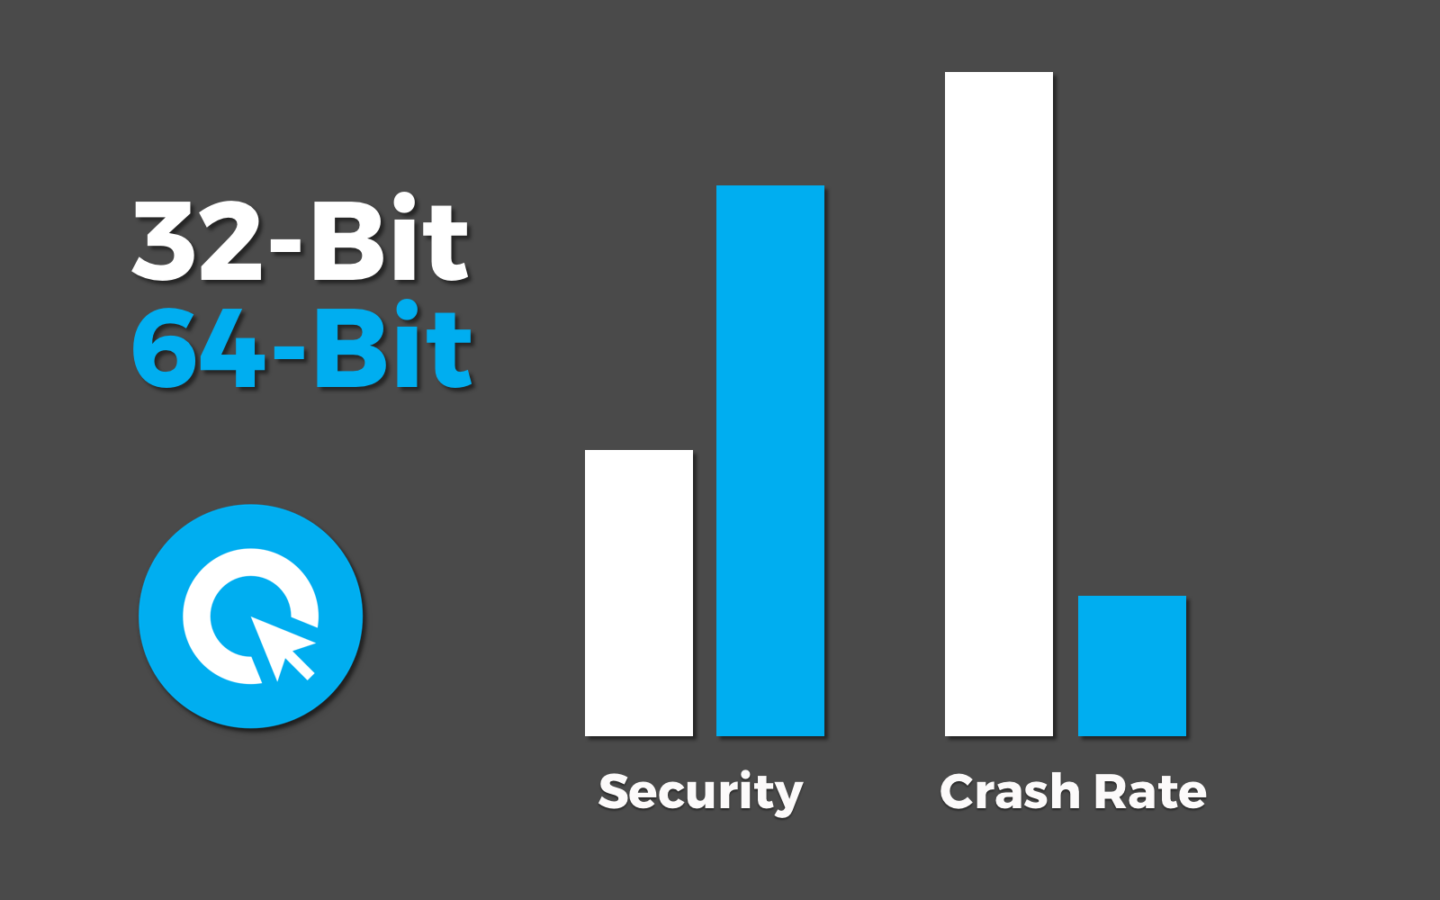 The 64-bit version of Cliqz has more security and fewer crashes